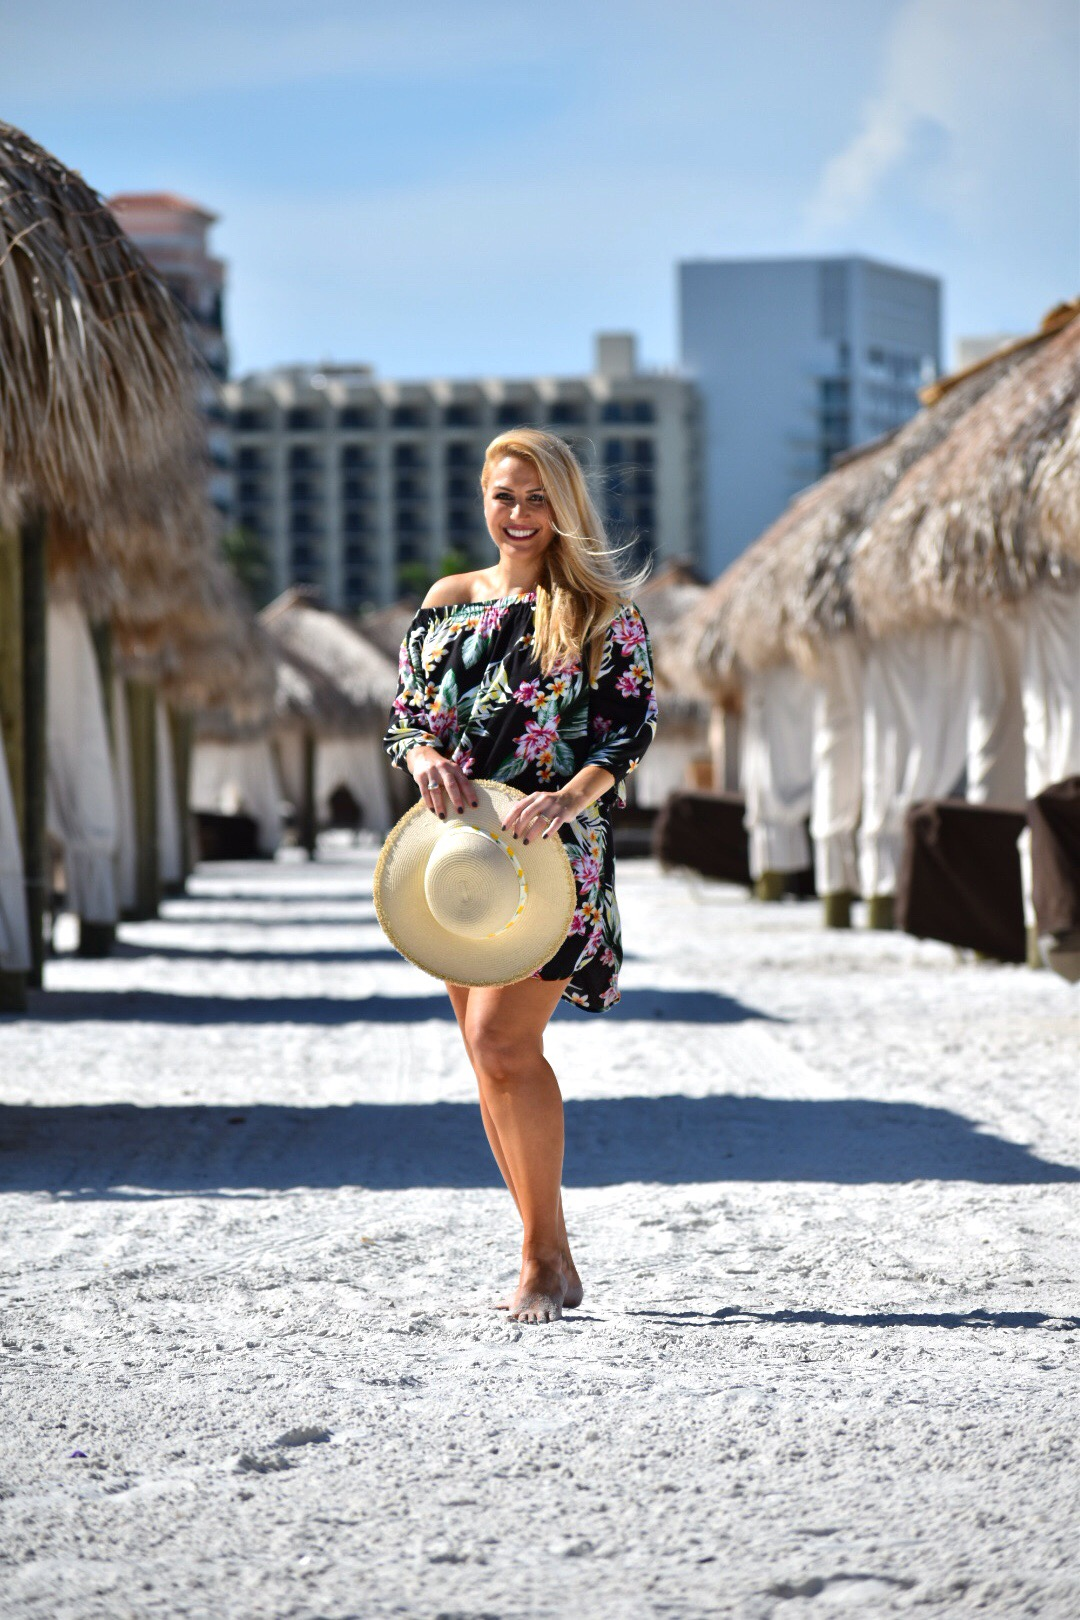 Off The Shoulder Dress, Tropical Dress, Floral Dress, Beach Cover-up and Beach Hat in Marco Island Florida